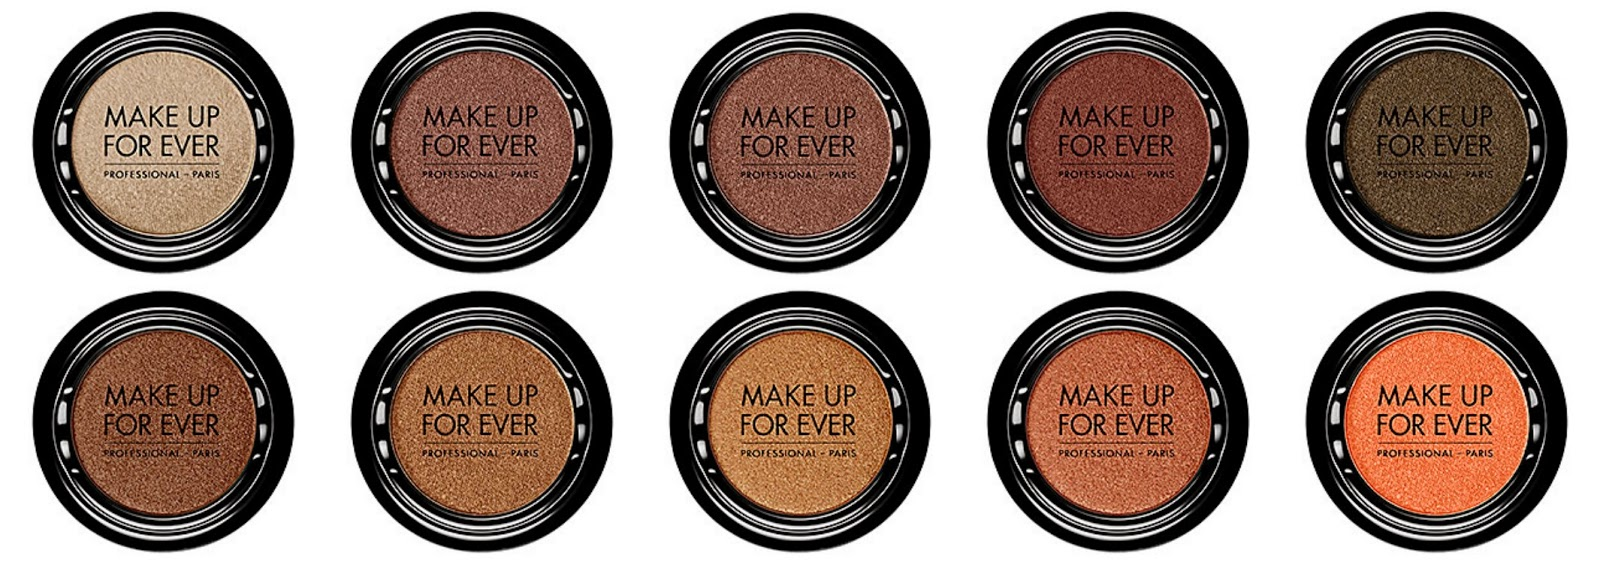 Make Up For Ever Artist Shadow Top from left: I542 Pinky Clay;I544 Pink Granite; I550 Olive Gray; I606 Pinky Earth; I628 Reptile Bottom from left: I634 Praline; I648 Golden Fawn; I662 Amber Brown; I702 Mahogany; I722 Mandarin